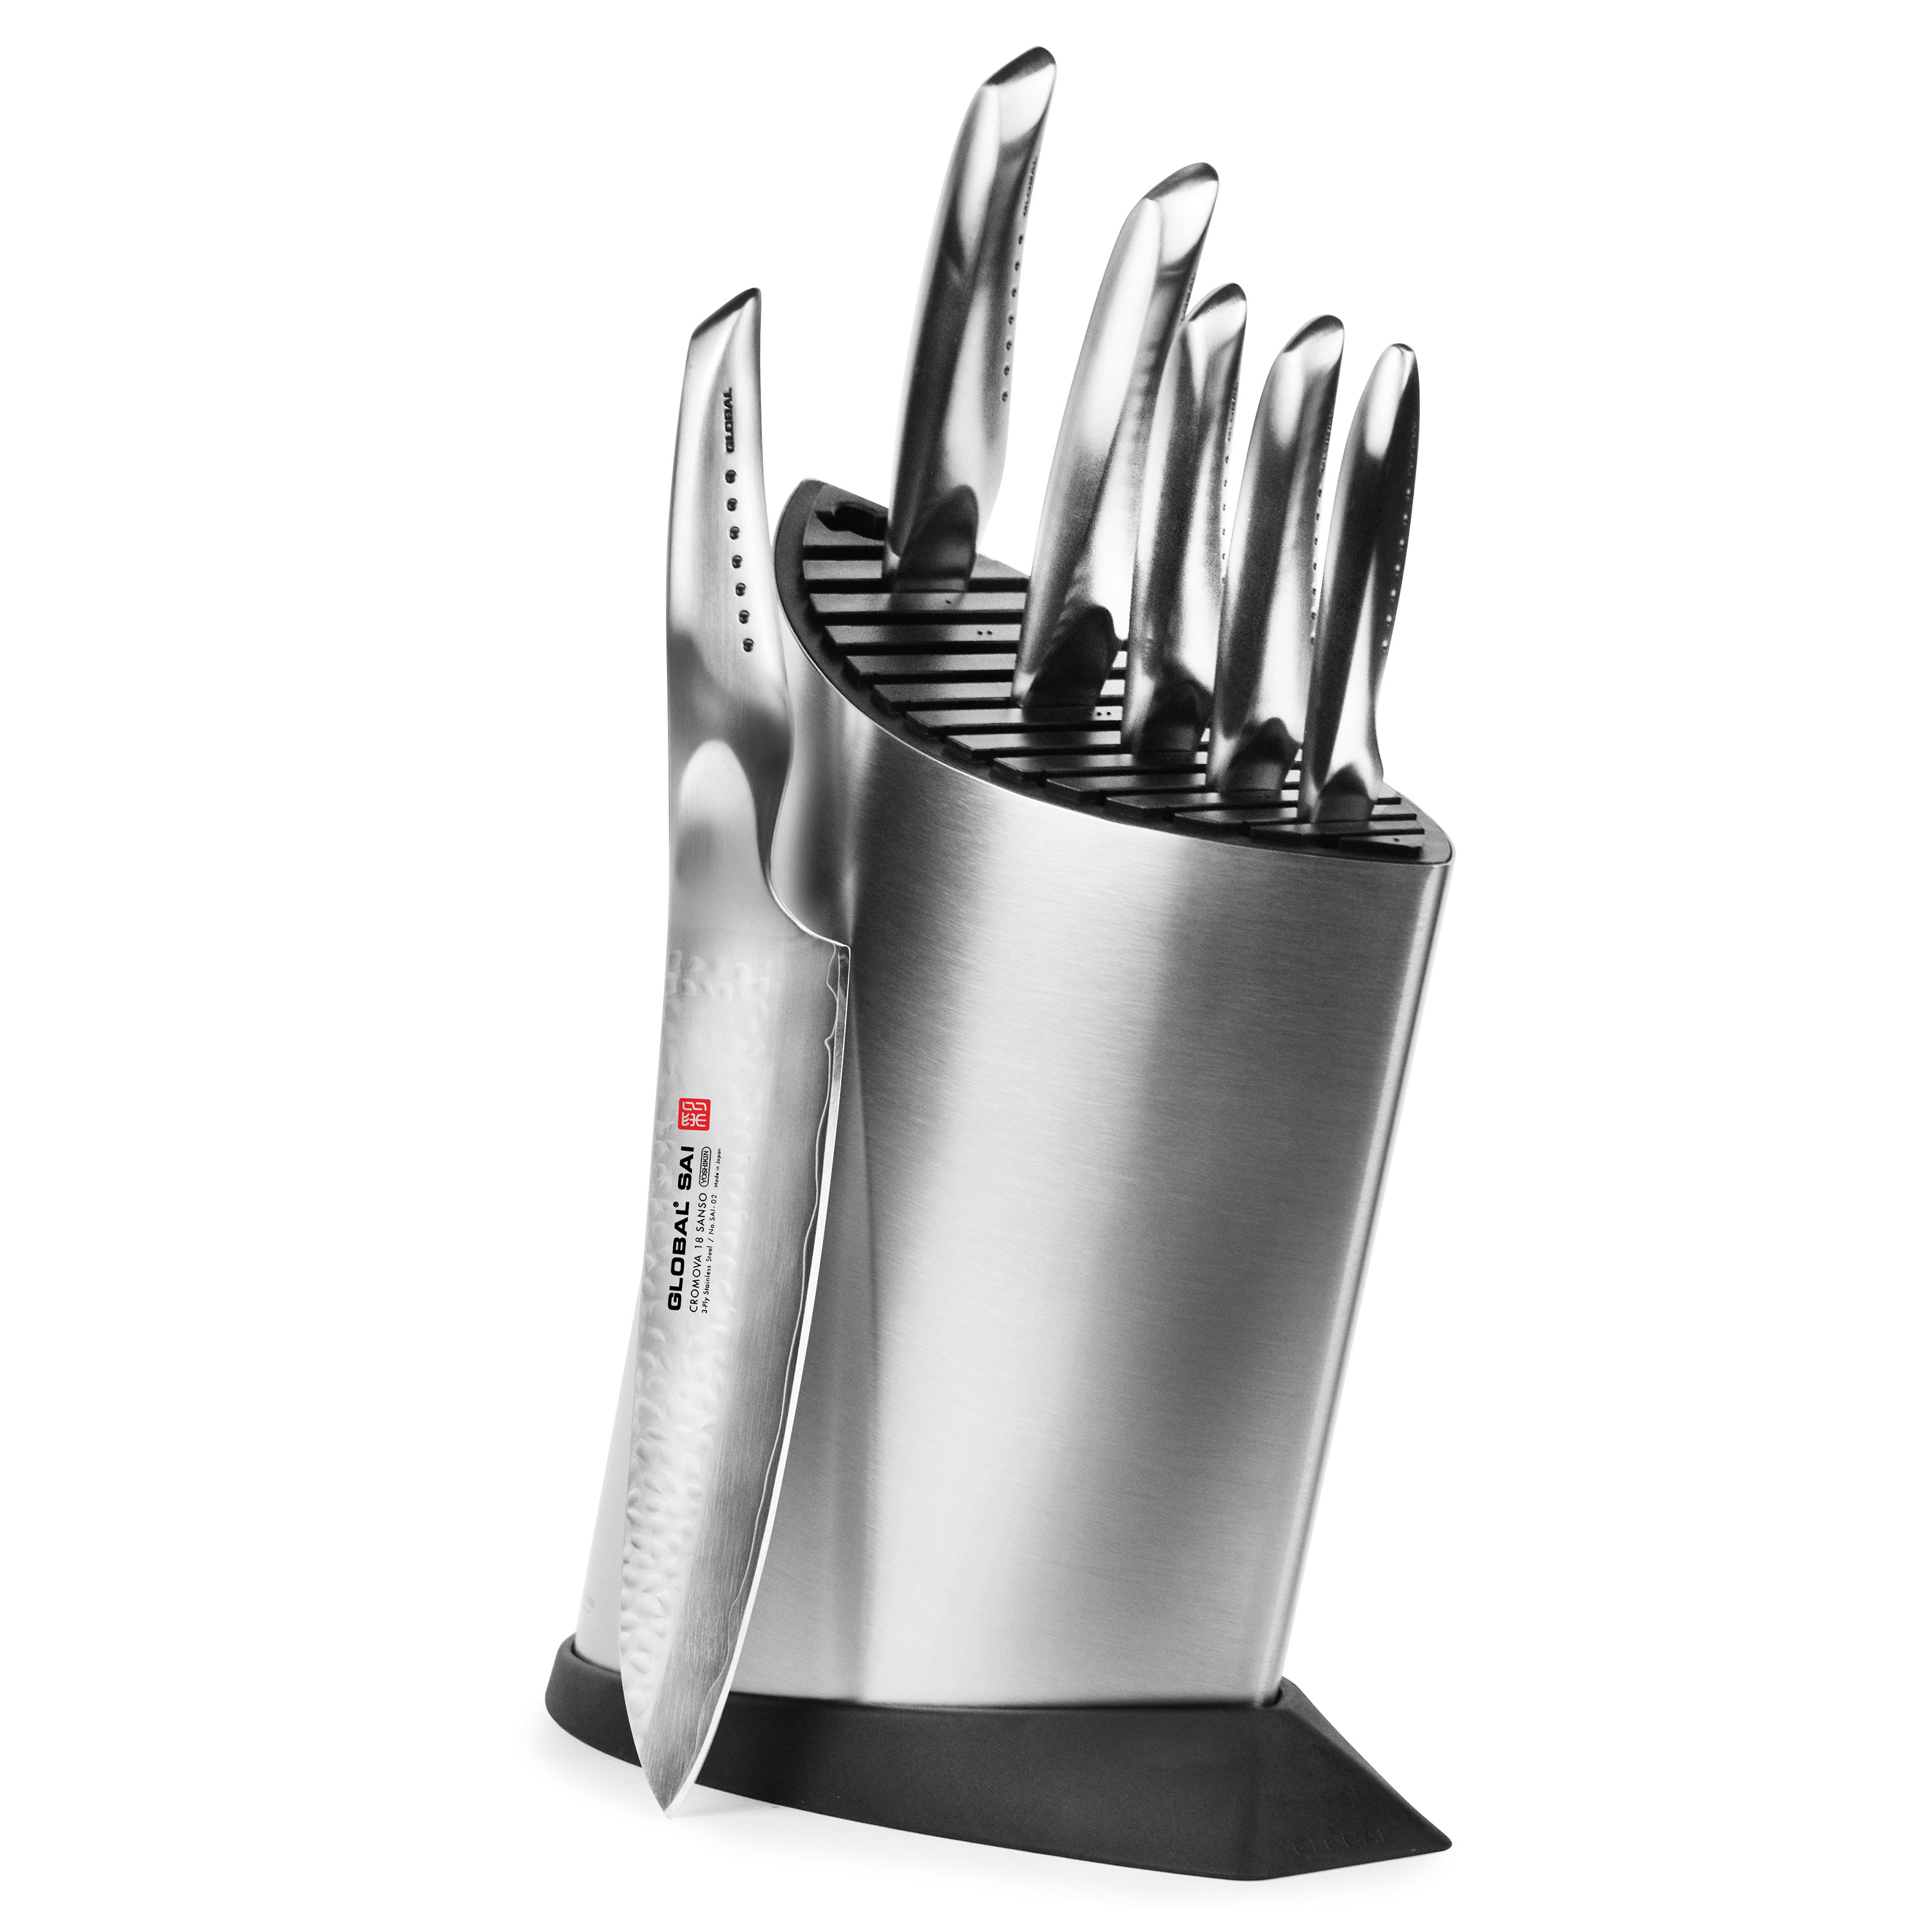 global kitchen knives global sai deluxe knife block set 7 piece cutlery and more 1767